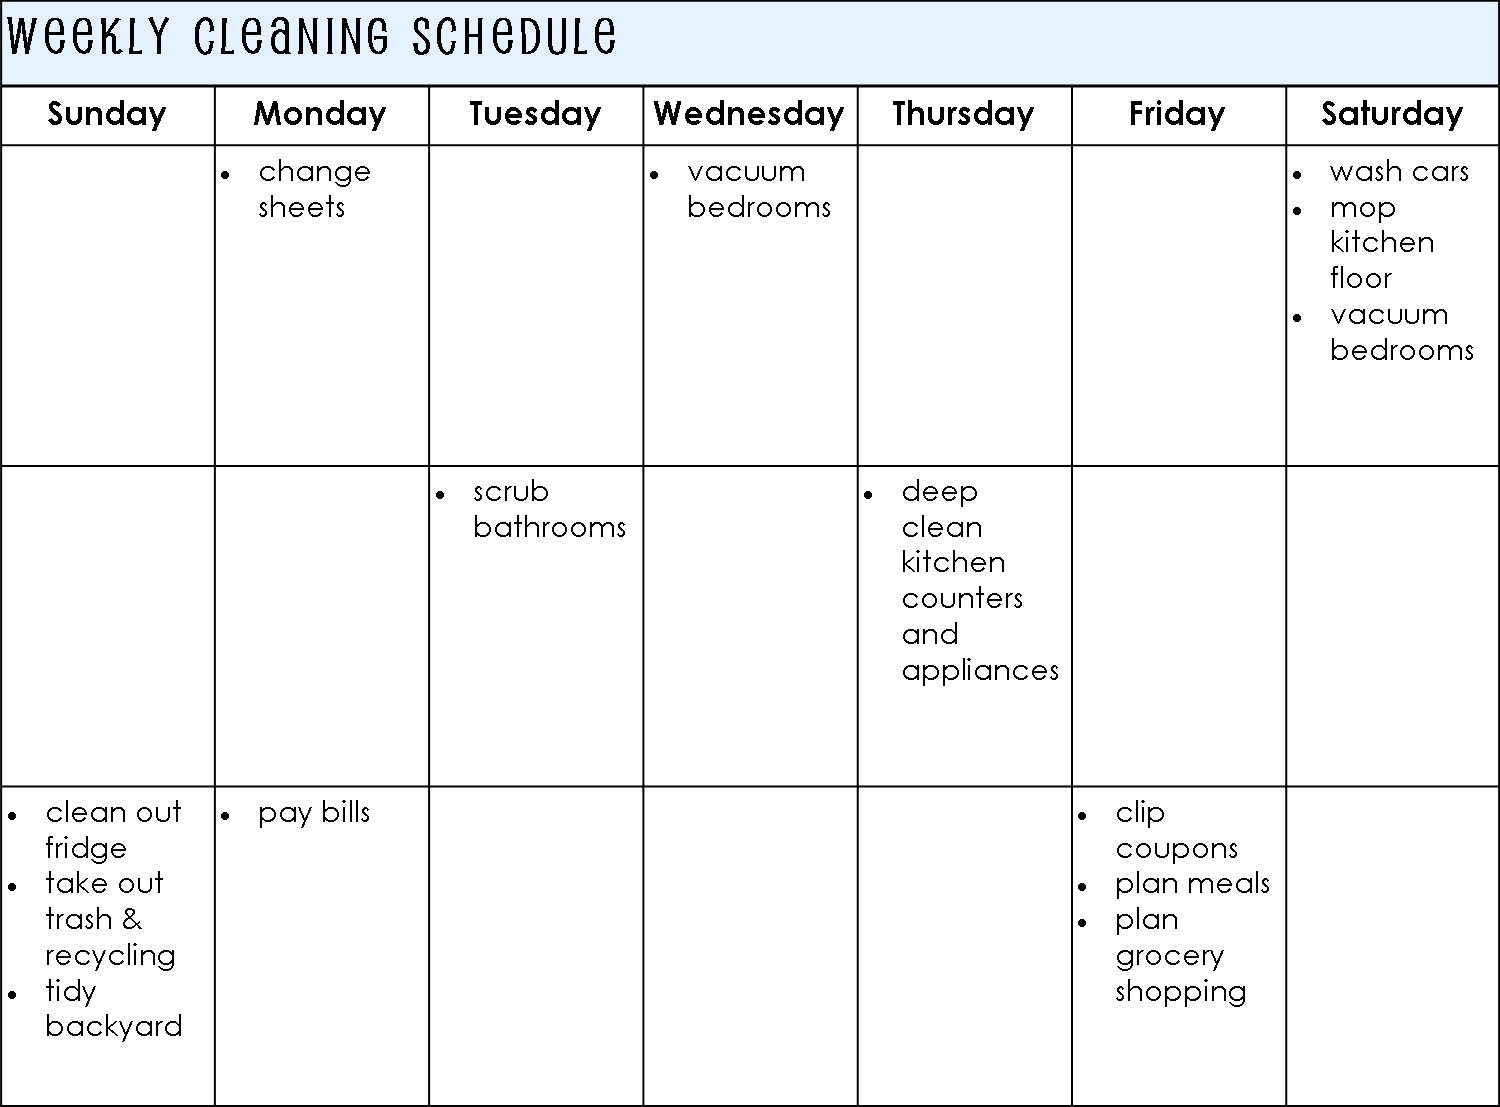 daily cleaning checklist template delightful house cleaning schedule